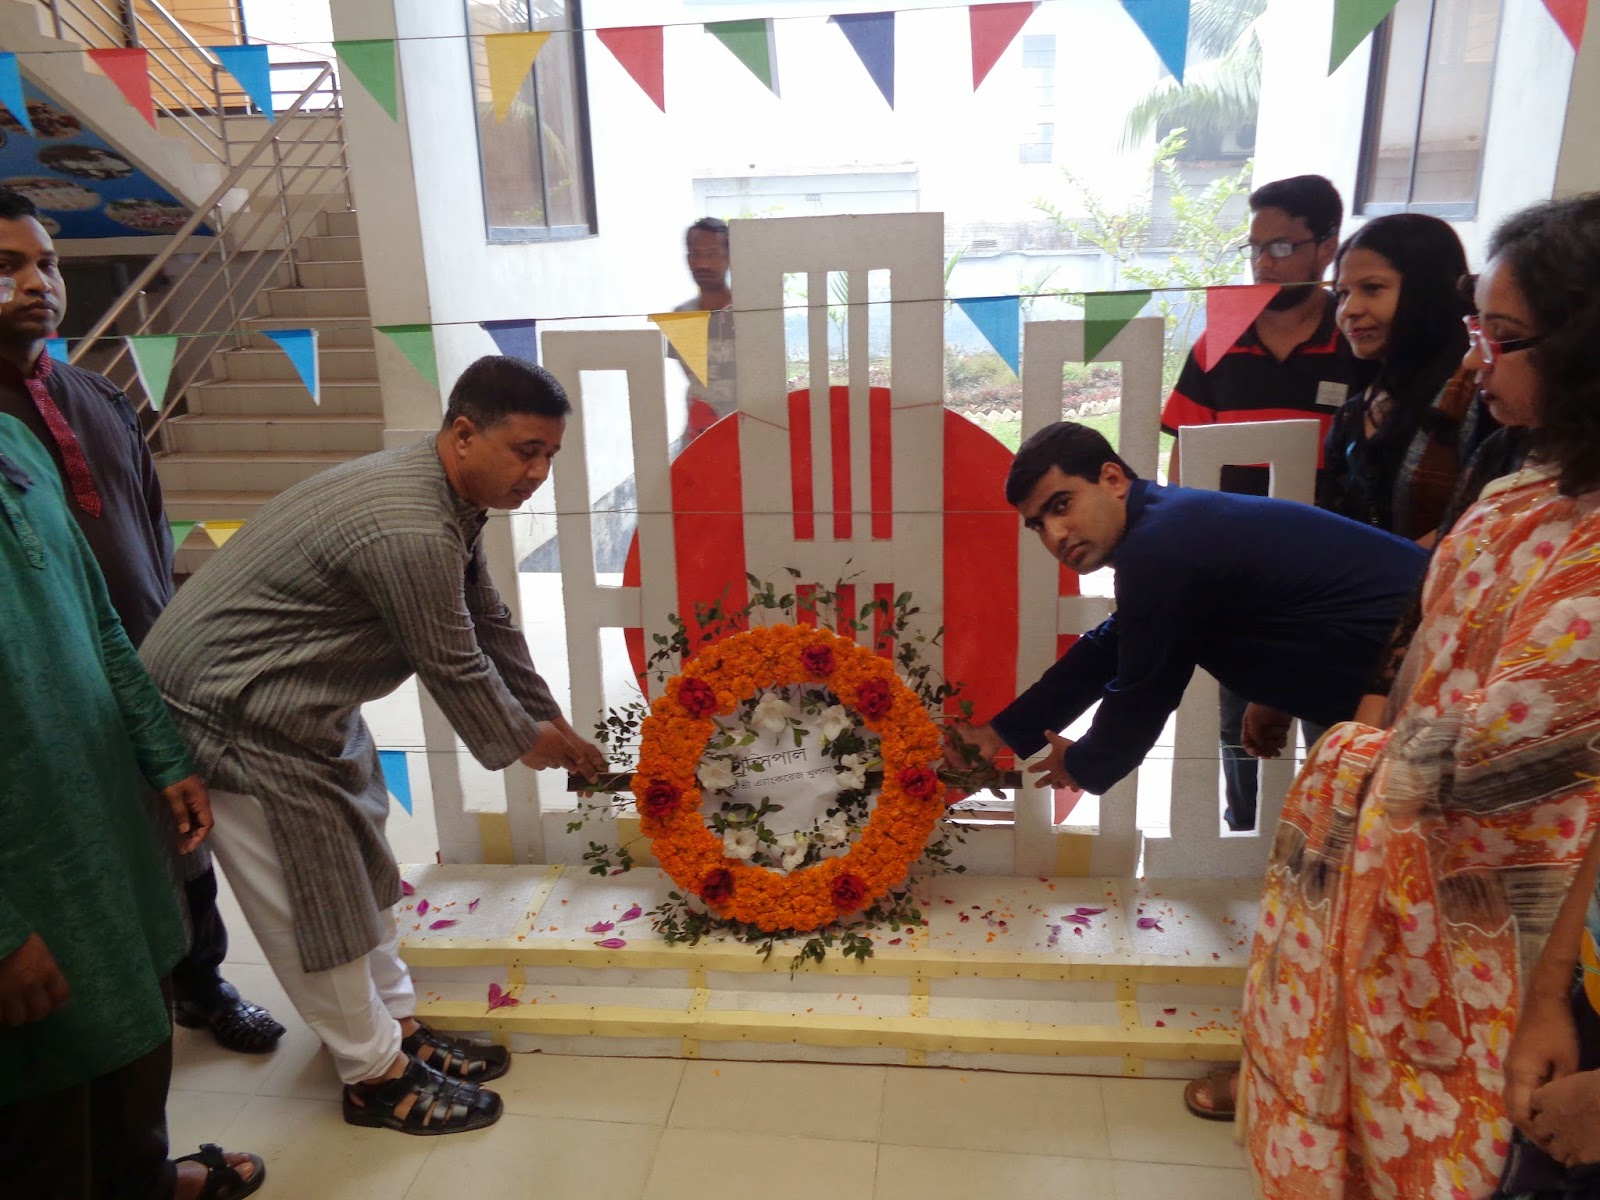 b n english school college khulna international mother language later the monument was opened for the students to offer flowers great respect and everybody took part in a special prayer seeking eternal peace for the